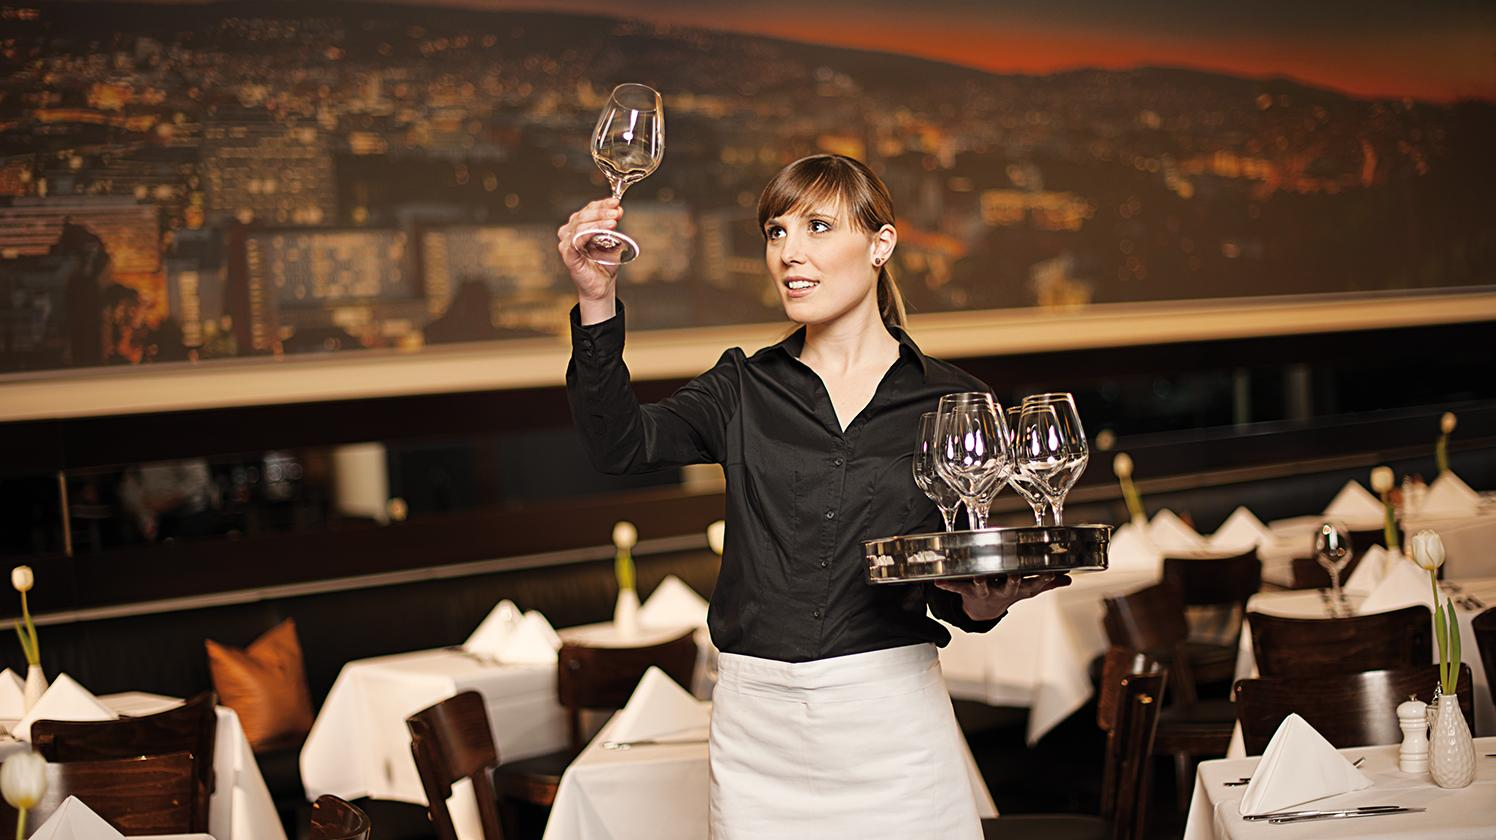 restaurant water dispenser waitress holding glass